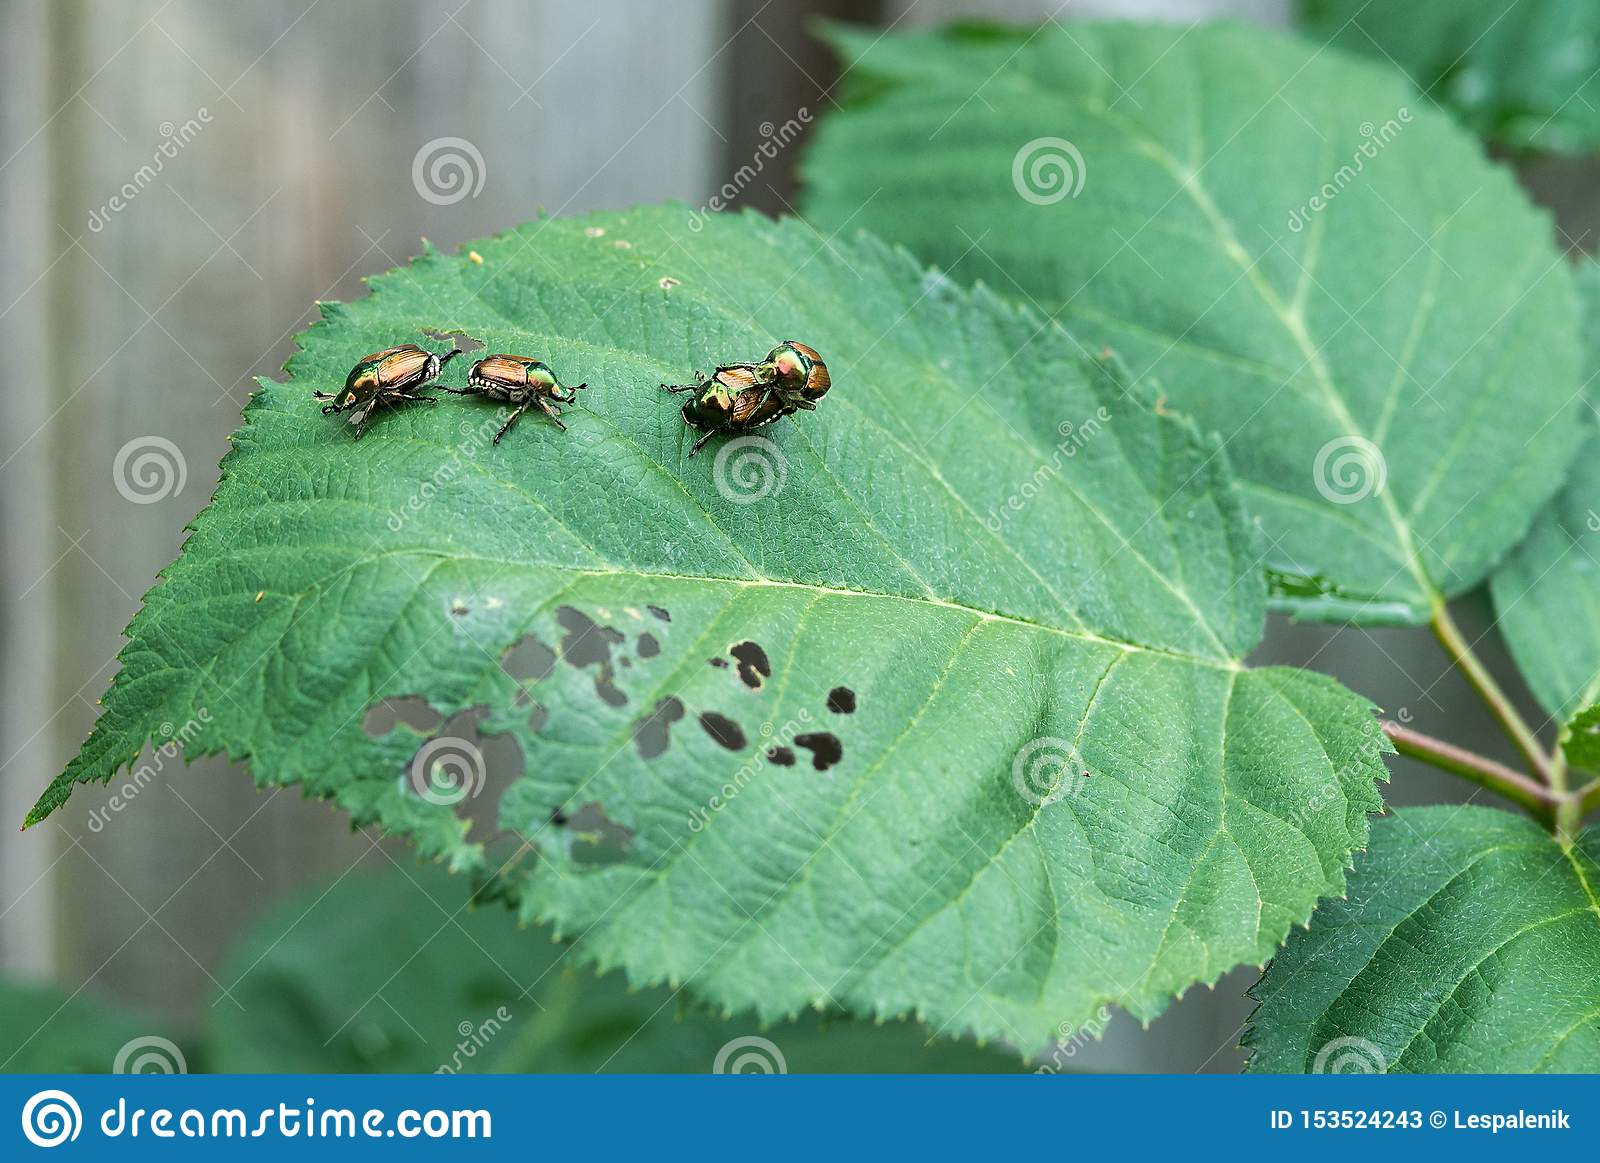 Japanese Beetles On A Blackberry Leaf Stock Image Image Of Garden Outdoors 153524243